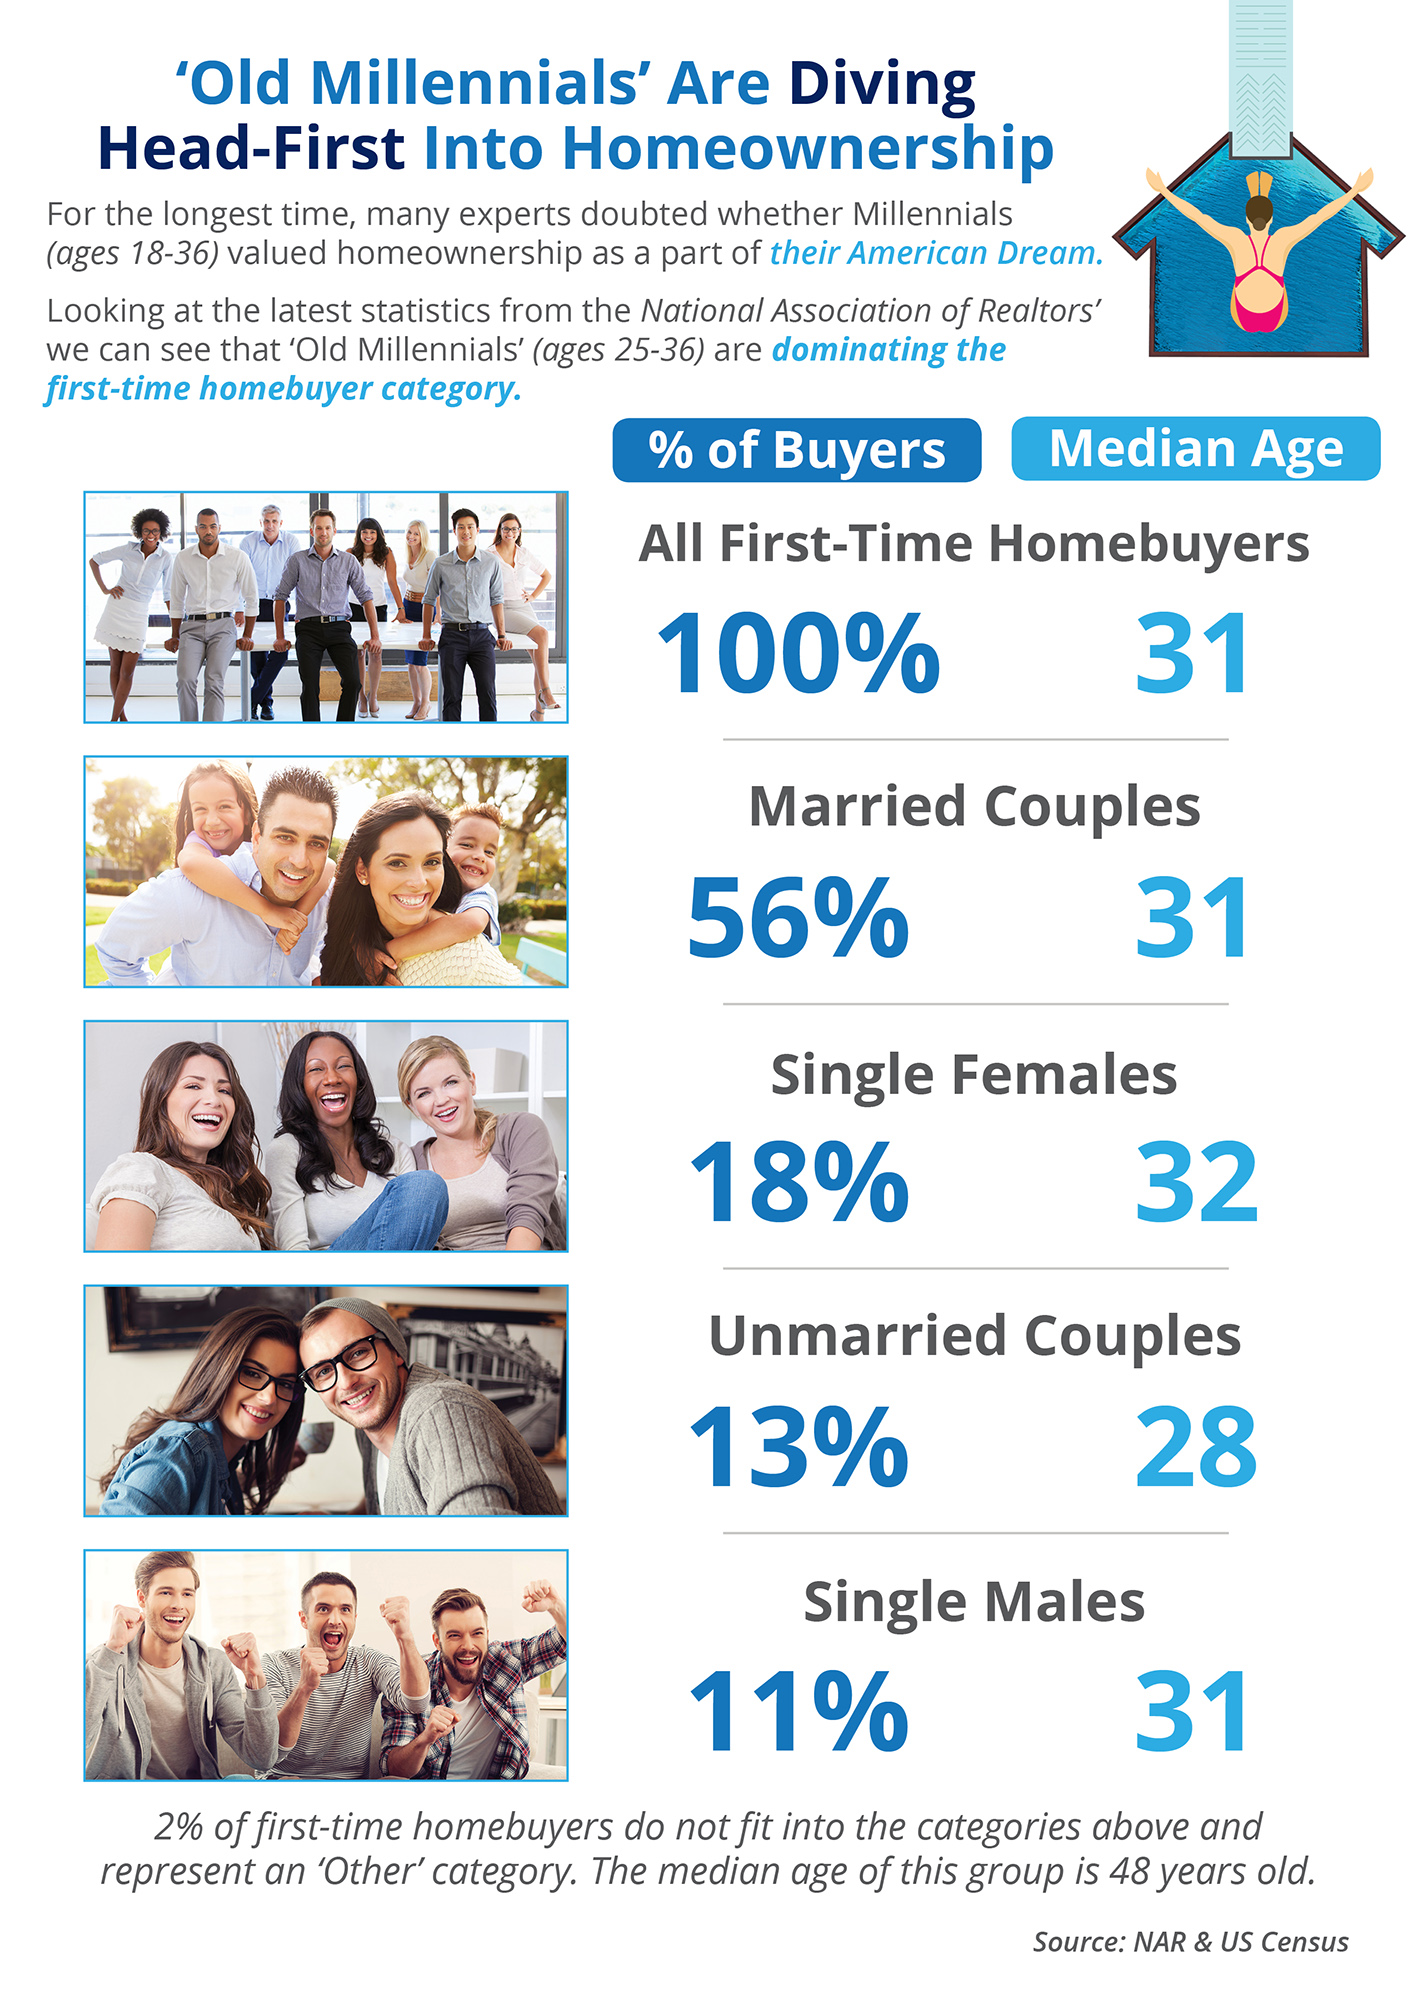 'Old Millennials' Are Diving Head-First into Homeownership [INFOGRAPHIC] | Simplifying The Market